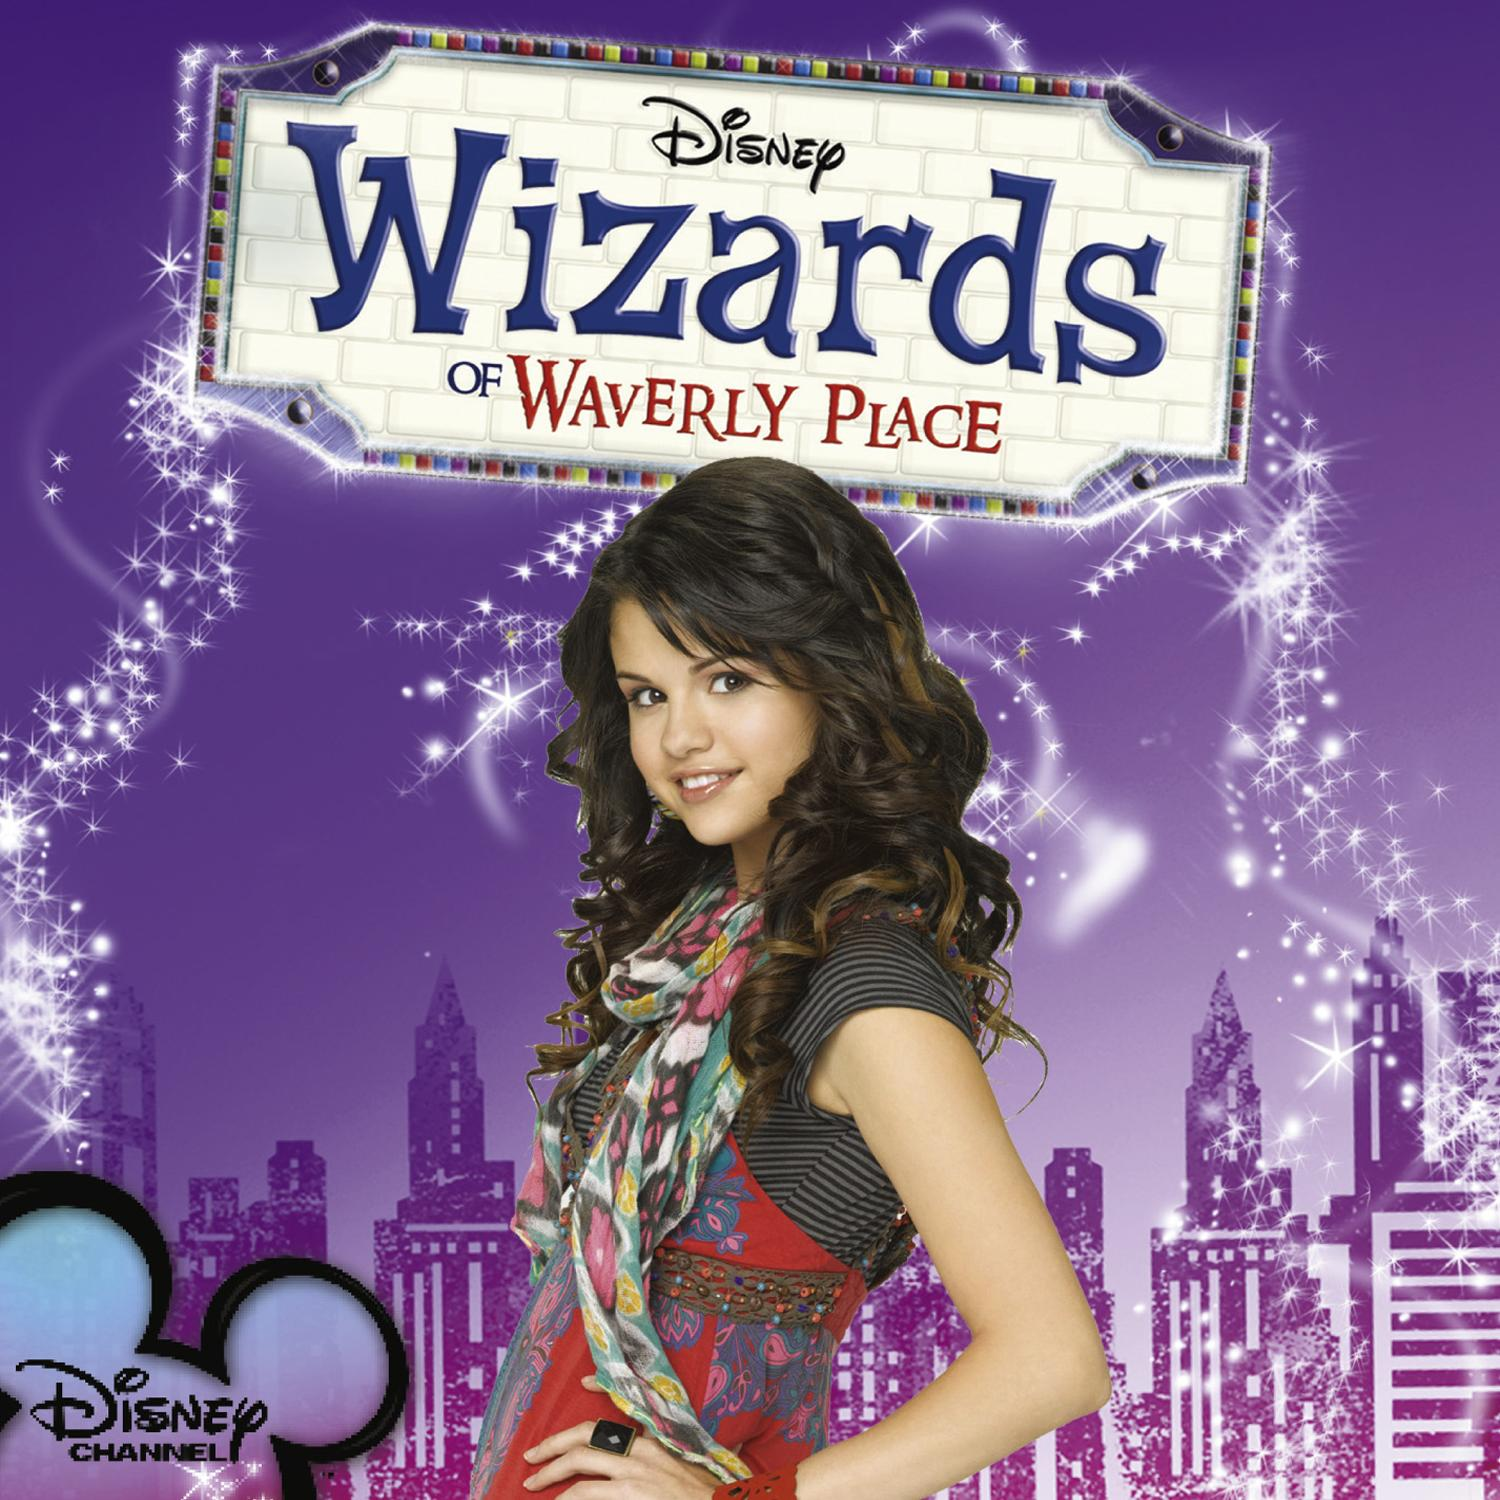 Wizards of Waverly Place soundtrack